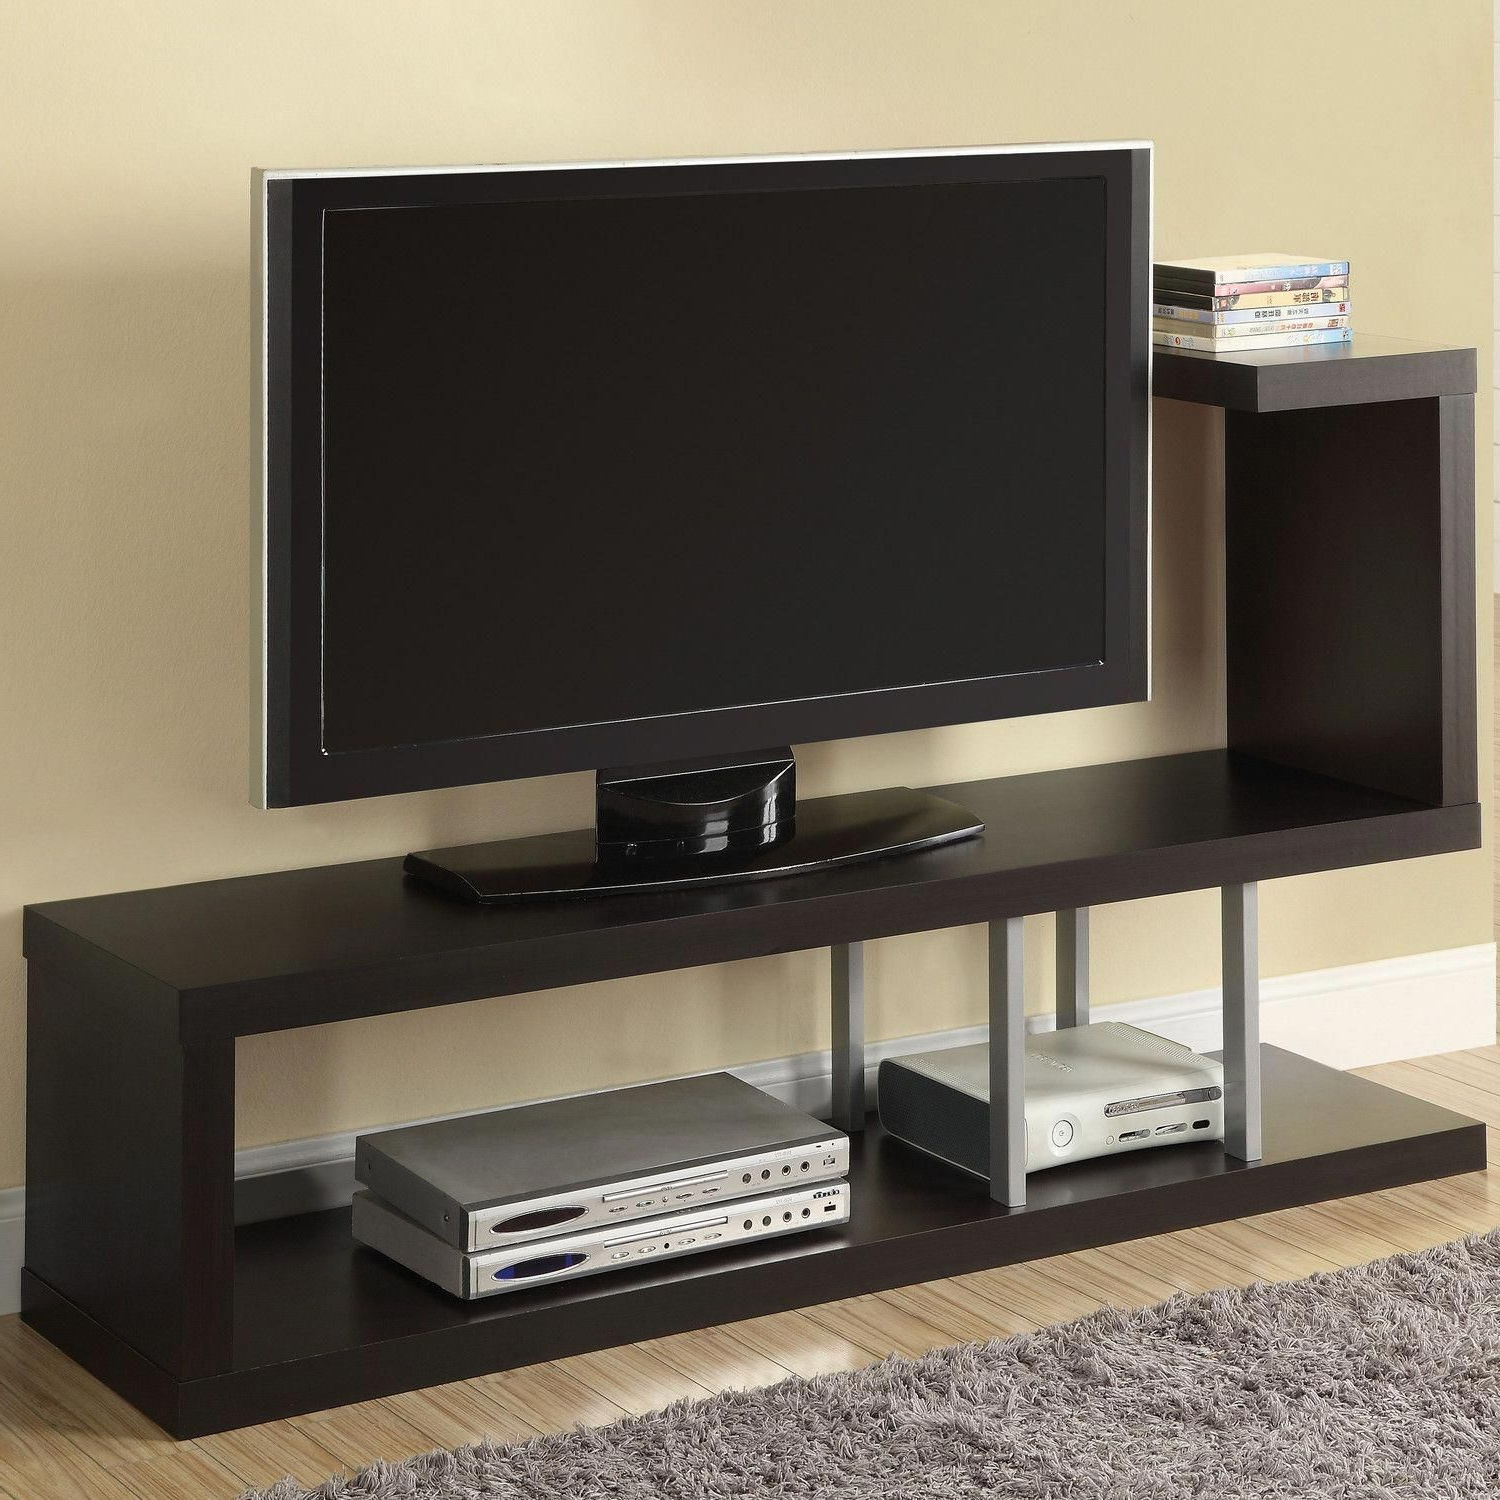 Swivel Stand For Tv In Newest Tv Stands For Small Spaces (Gallery 7 of 20)